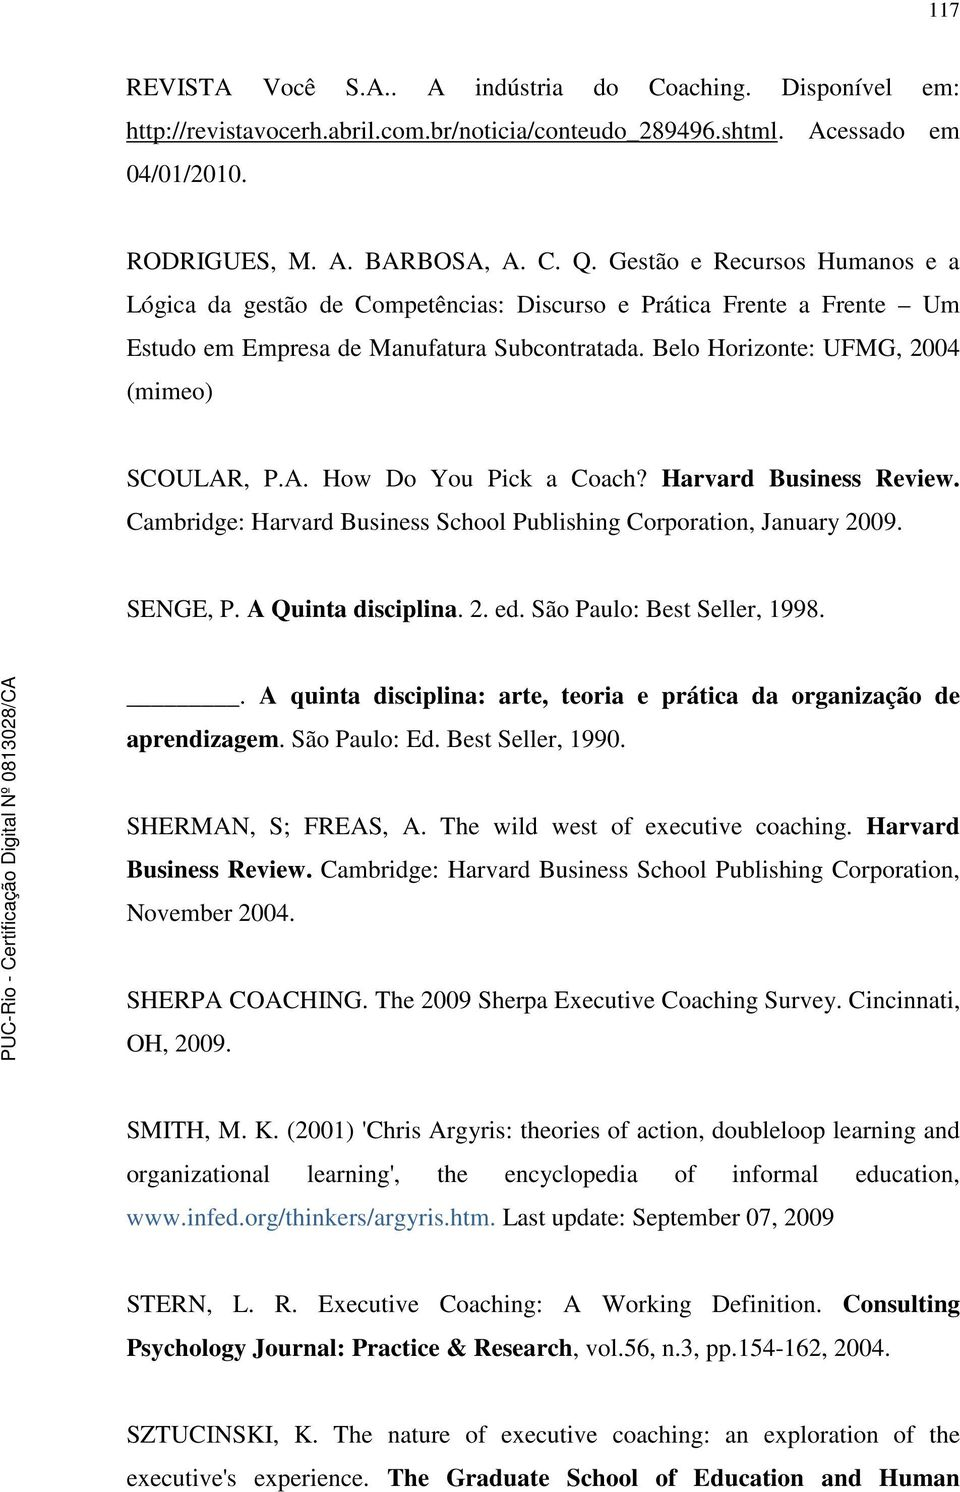 , P.A. How Do You Pick a Coach? Harvard Business Review. Cambridge: Harvard Business School Publishing Corporation, January 2009. SENGE, P. A Quinta disciplina. 2. ed. São Paulo: Best Seller, 1998.